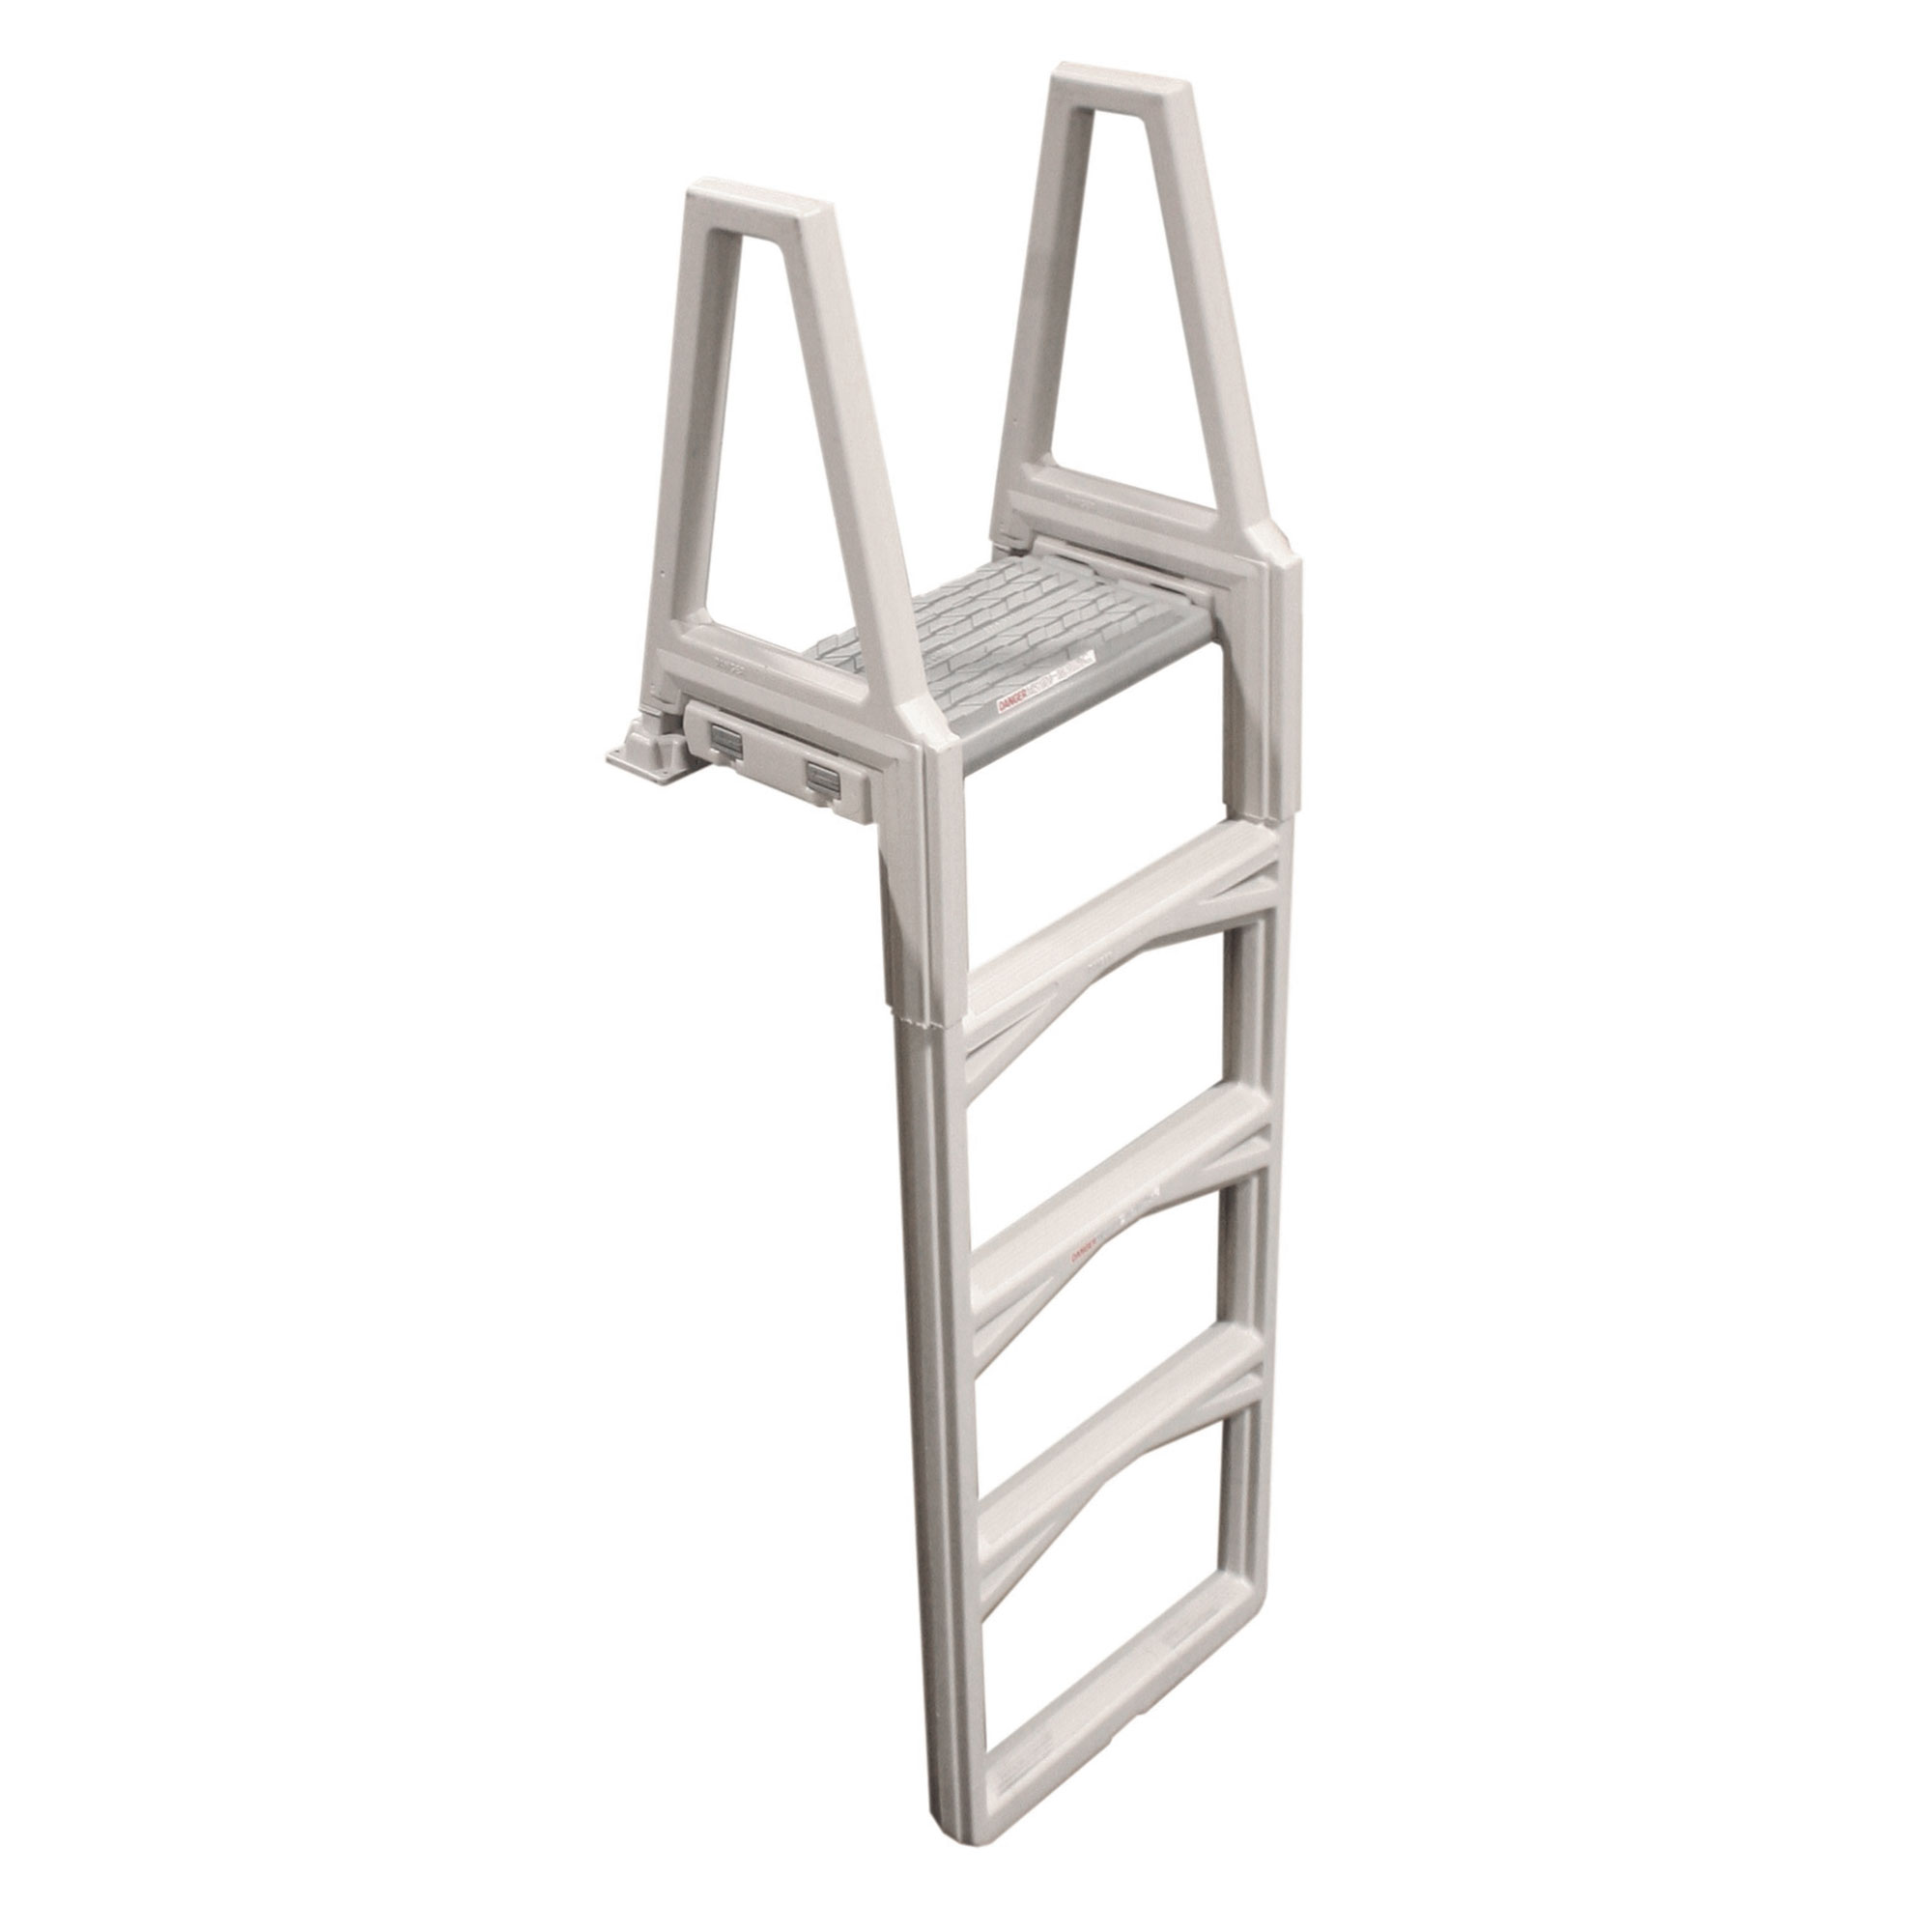 Confer sturdy adjustable above ground swimming pool ladder for 56 635